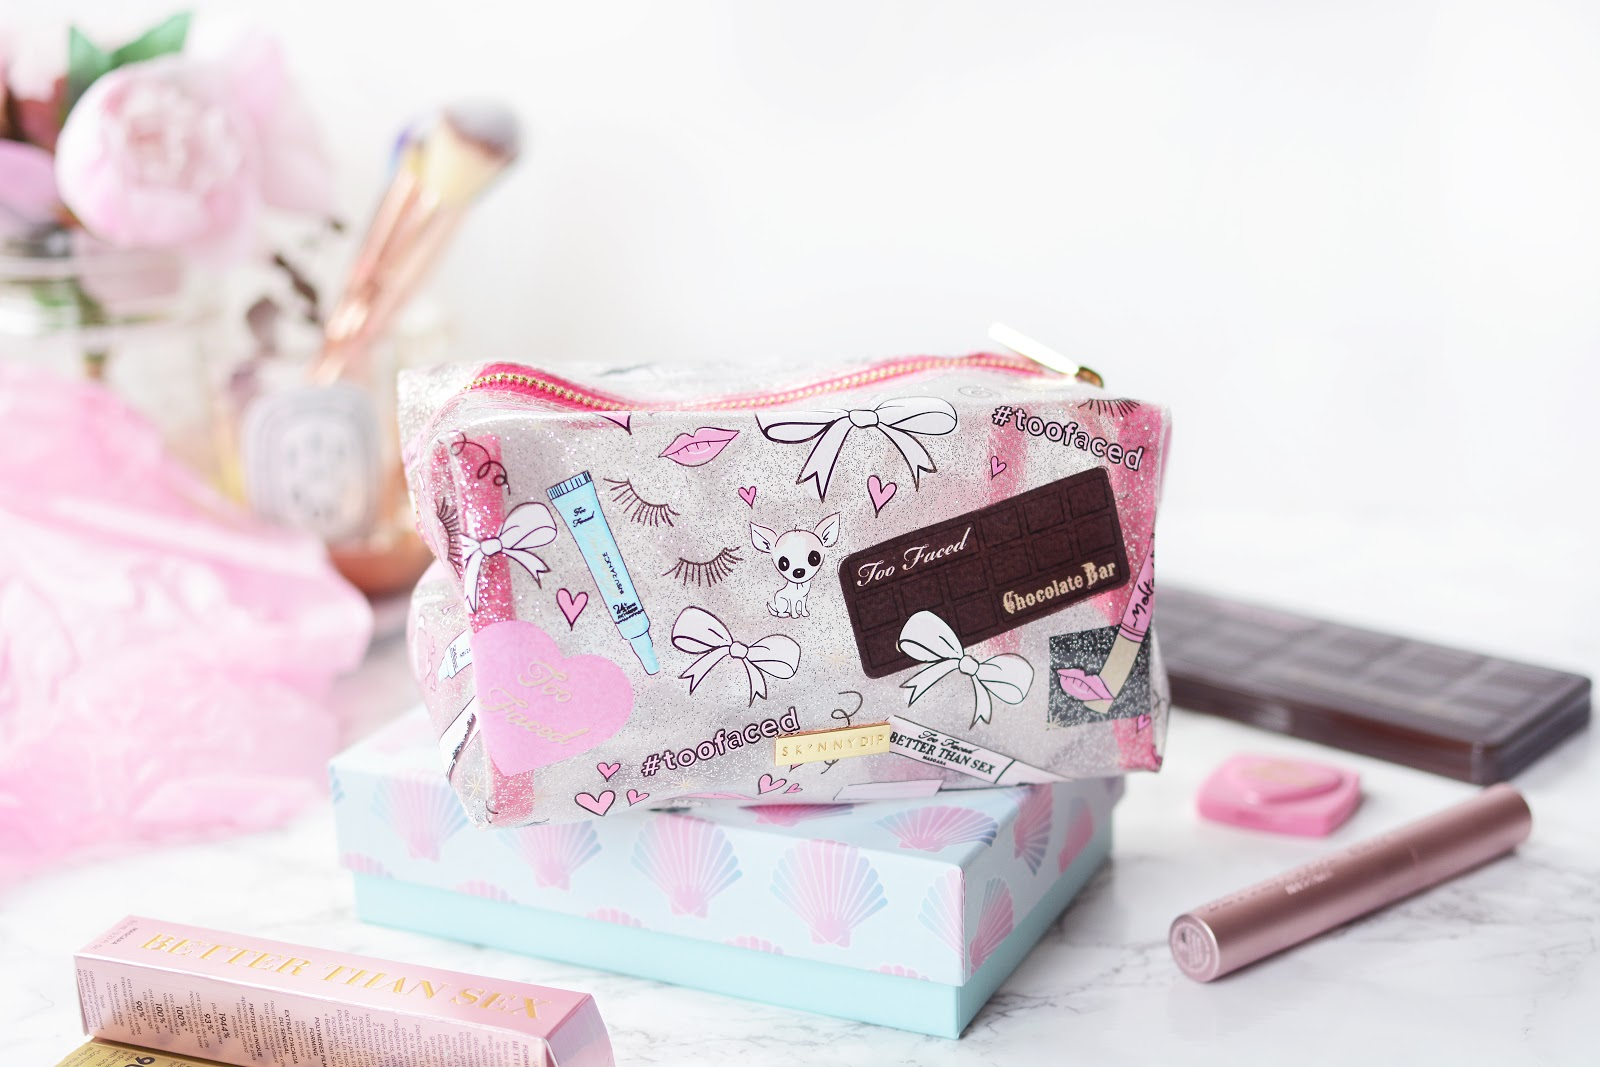 skinnydip london too faced make-up bag